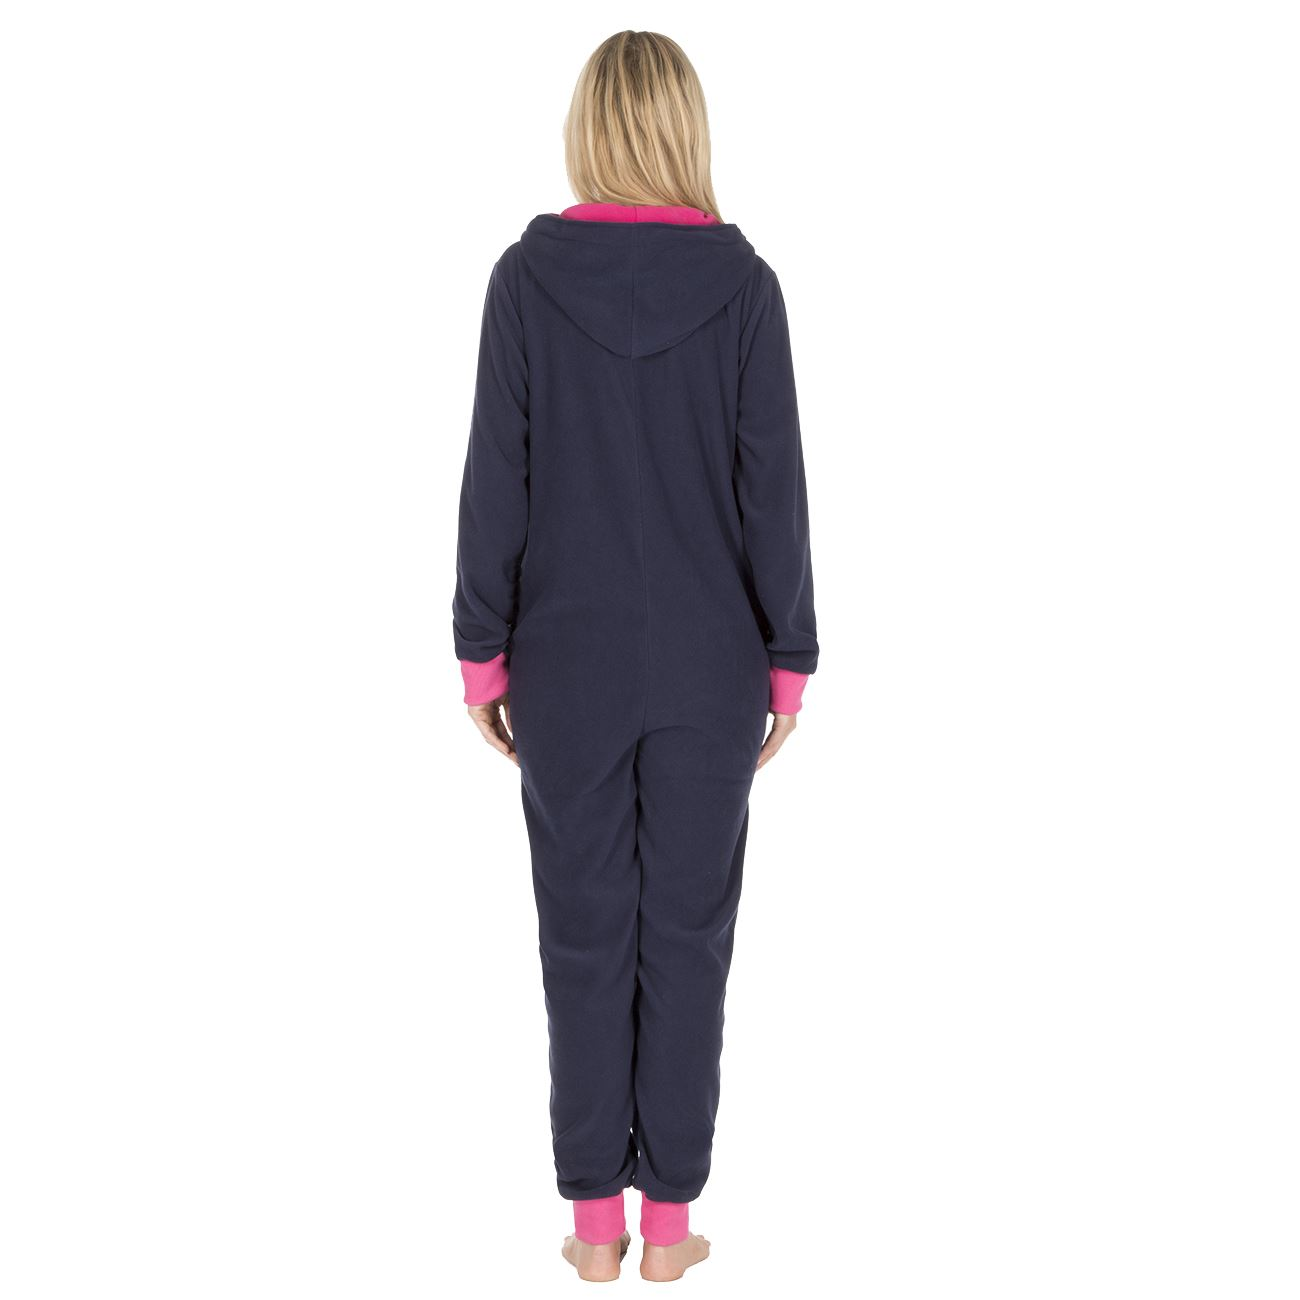 Ladies-Womens-Girls-Fleece-All-In-One-Pyjamas-Outfit-Jumpsuit-Costume-Size-6-18 thumbnail 45